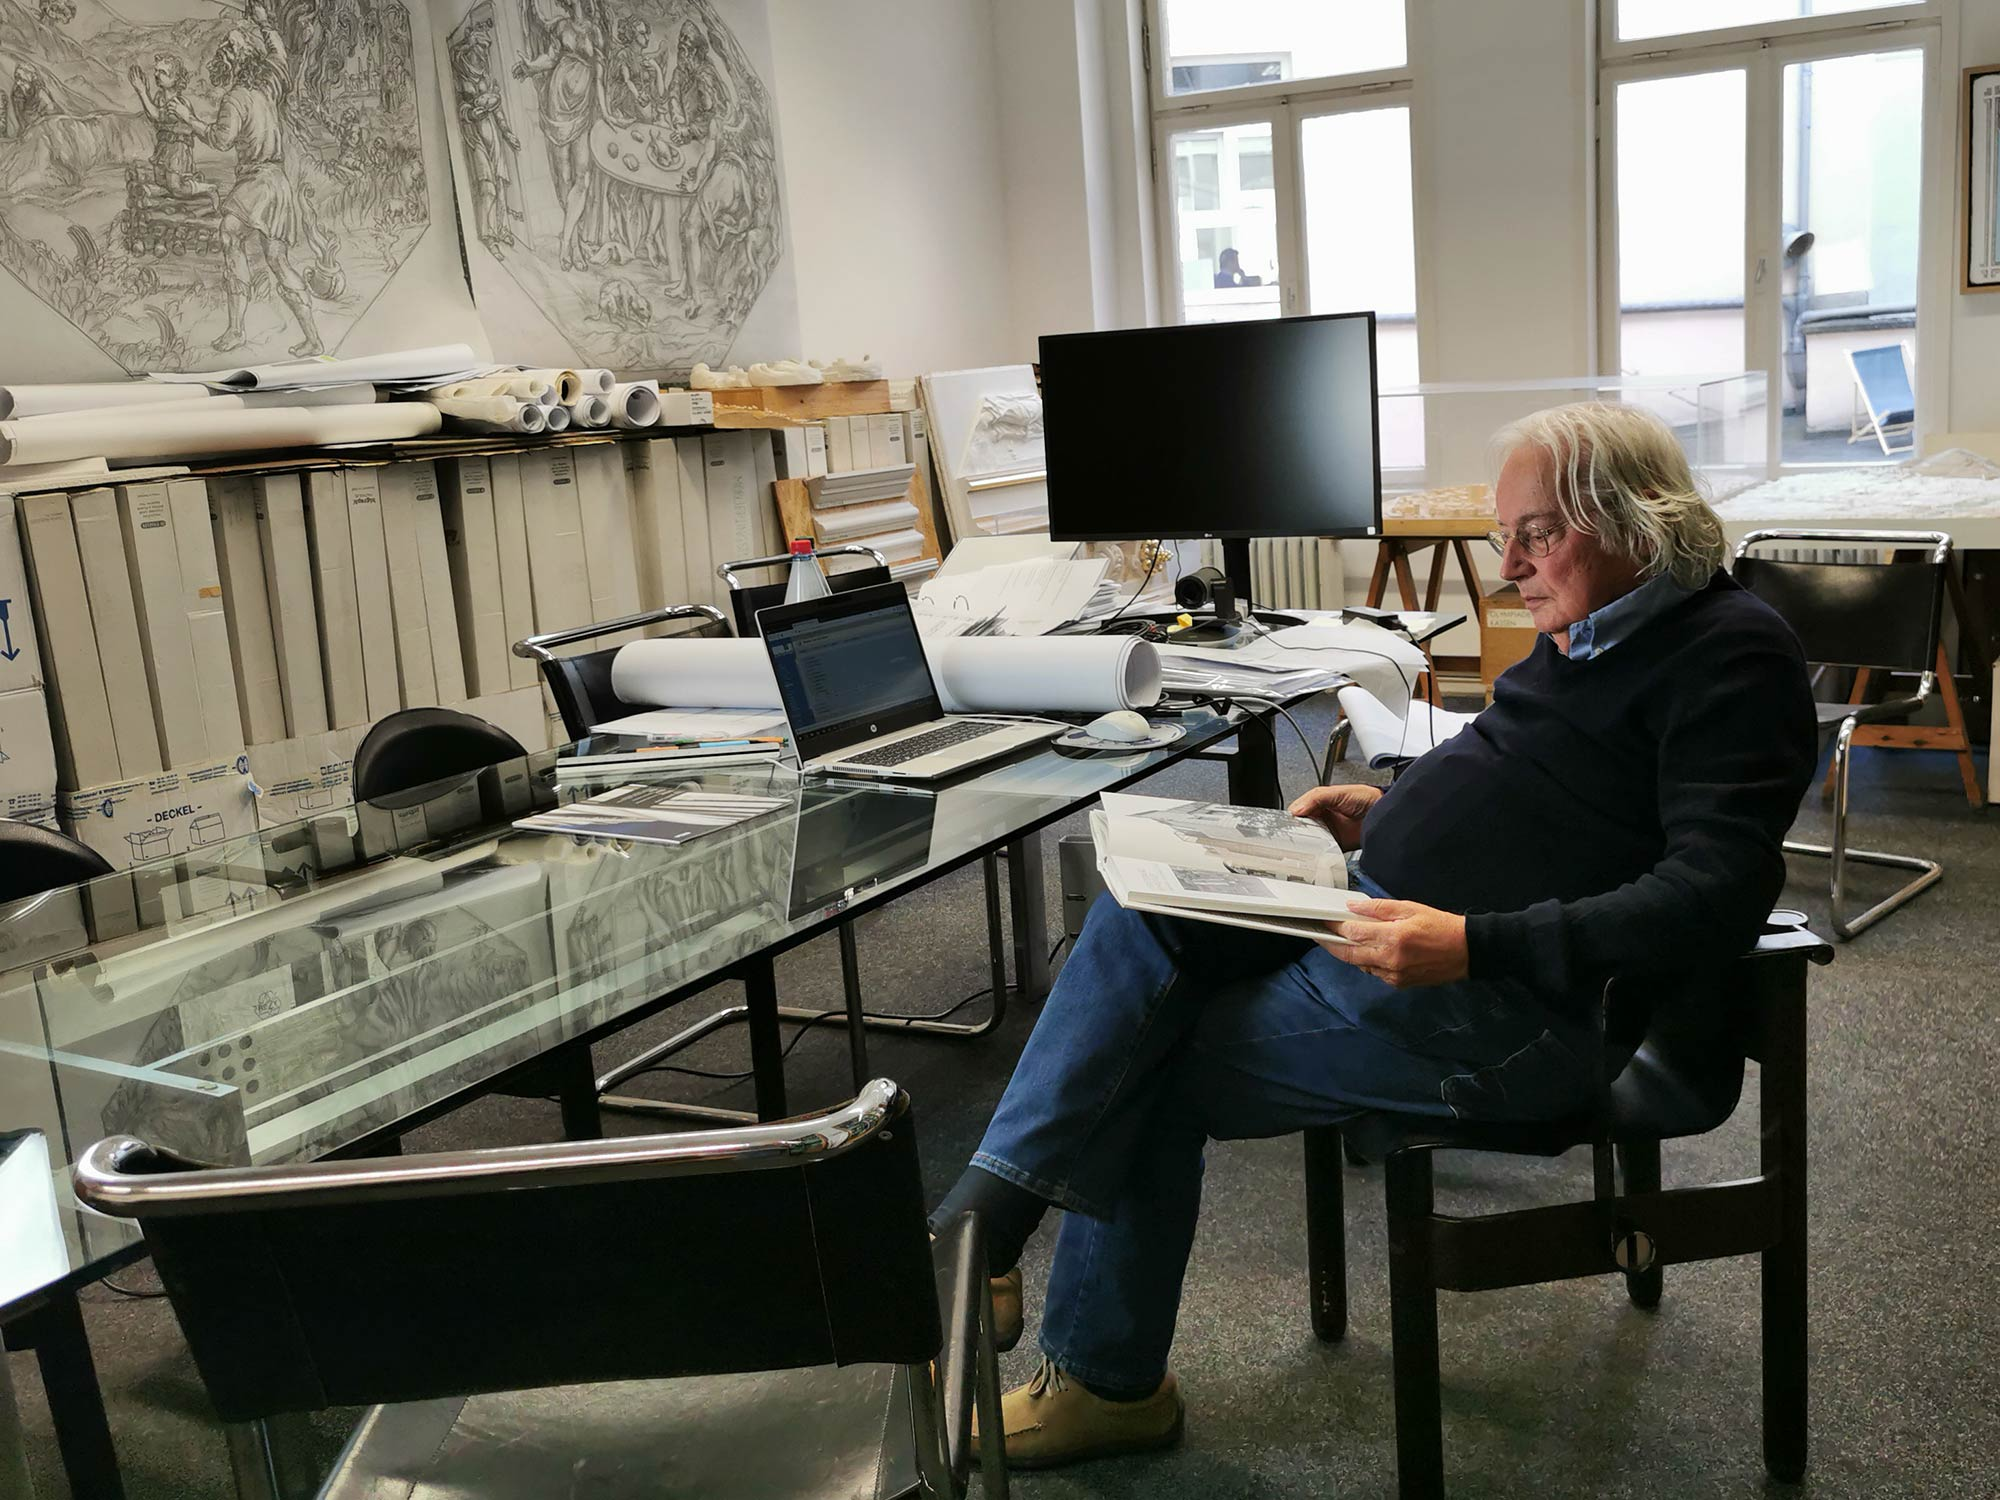 Professor Jochem Jourdan im Interview über Architektur in Frankfurt